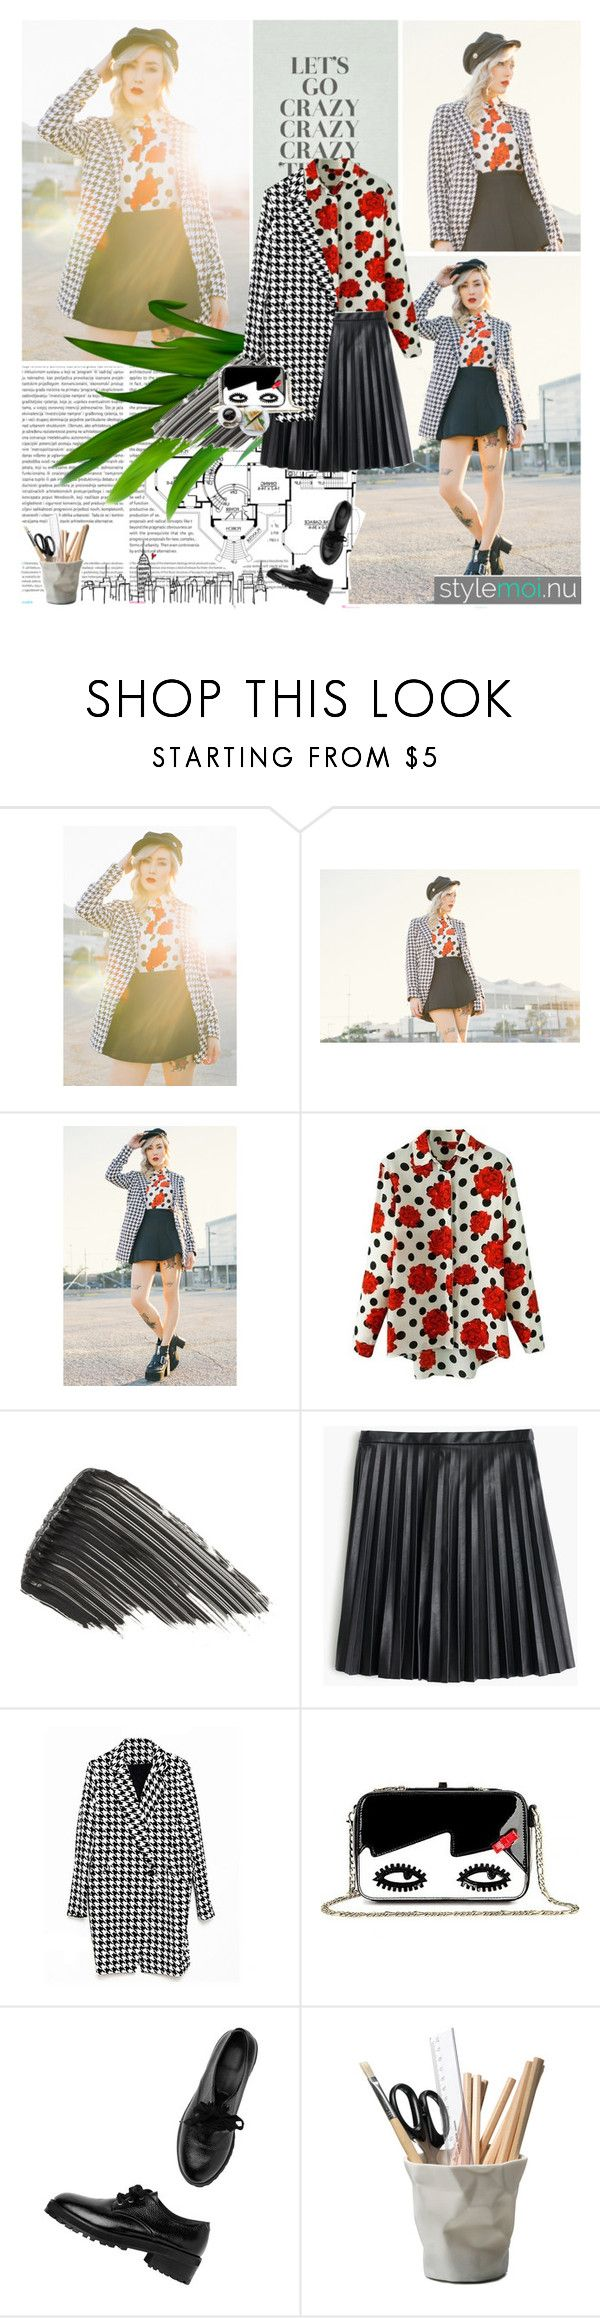 """""""No 219: STYLEMOI CELEBRATING 1-ST YEAR ANNIVERSARY SIGN UP (@lovepastel)"""" by lovepastel ❤ liked on Polyvore featuring Oris, Burberry, J.Crew, Monki, ESSEY and stylemoi"""